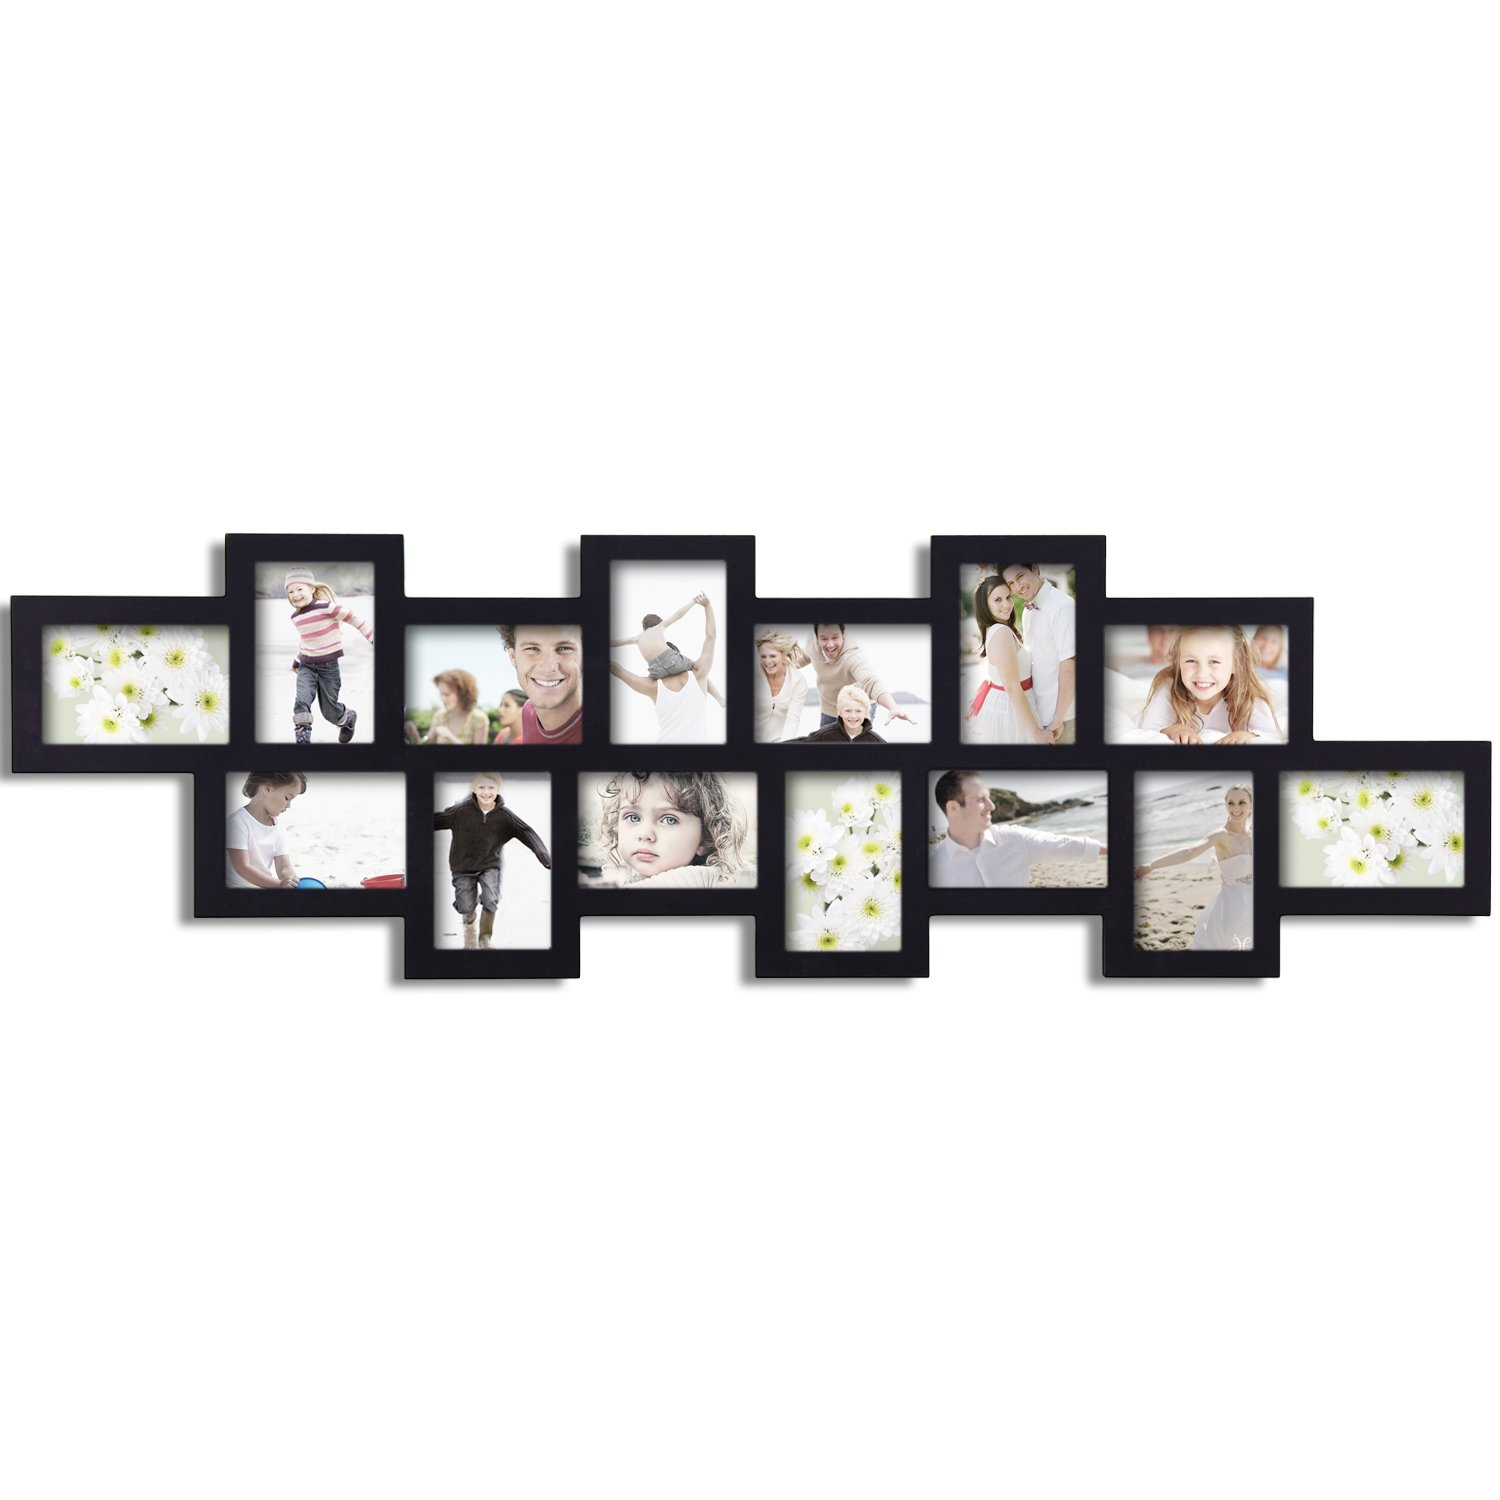 adeco 14 opening 4x6 black wood wall collage picture photo frames ebay. Black Bedroom Furniture Sets. Home Design Ideas